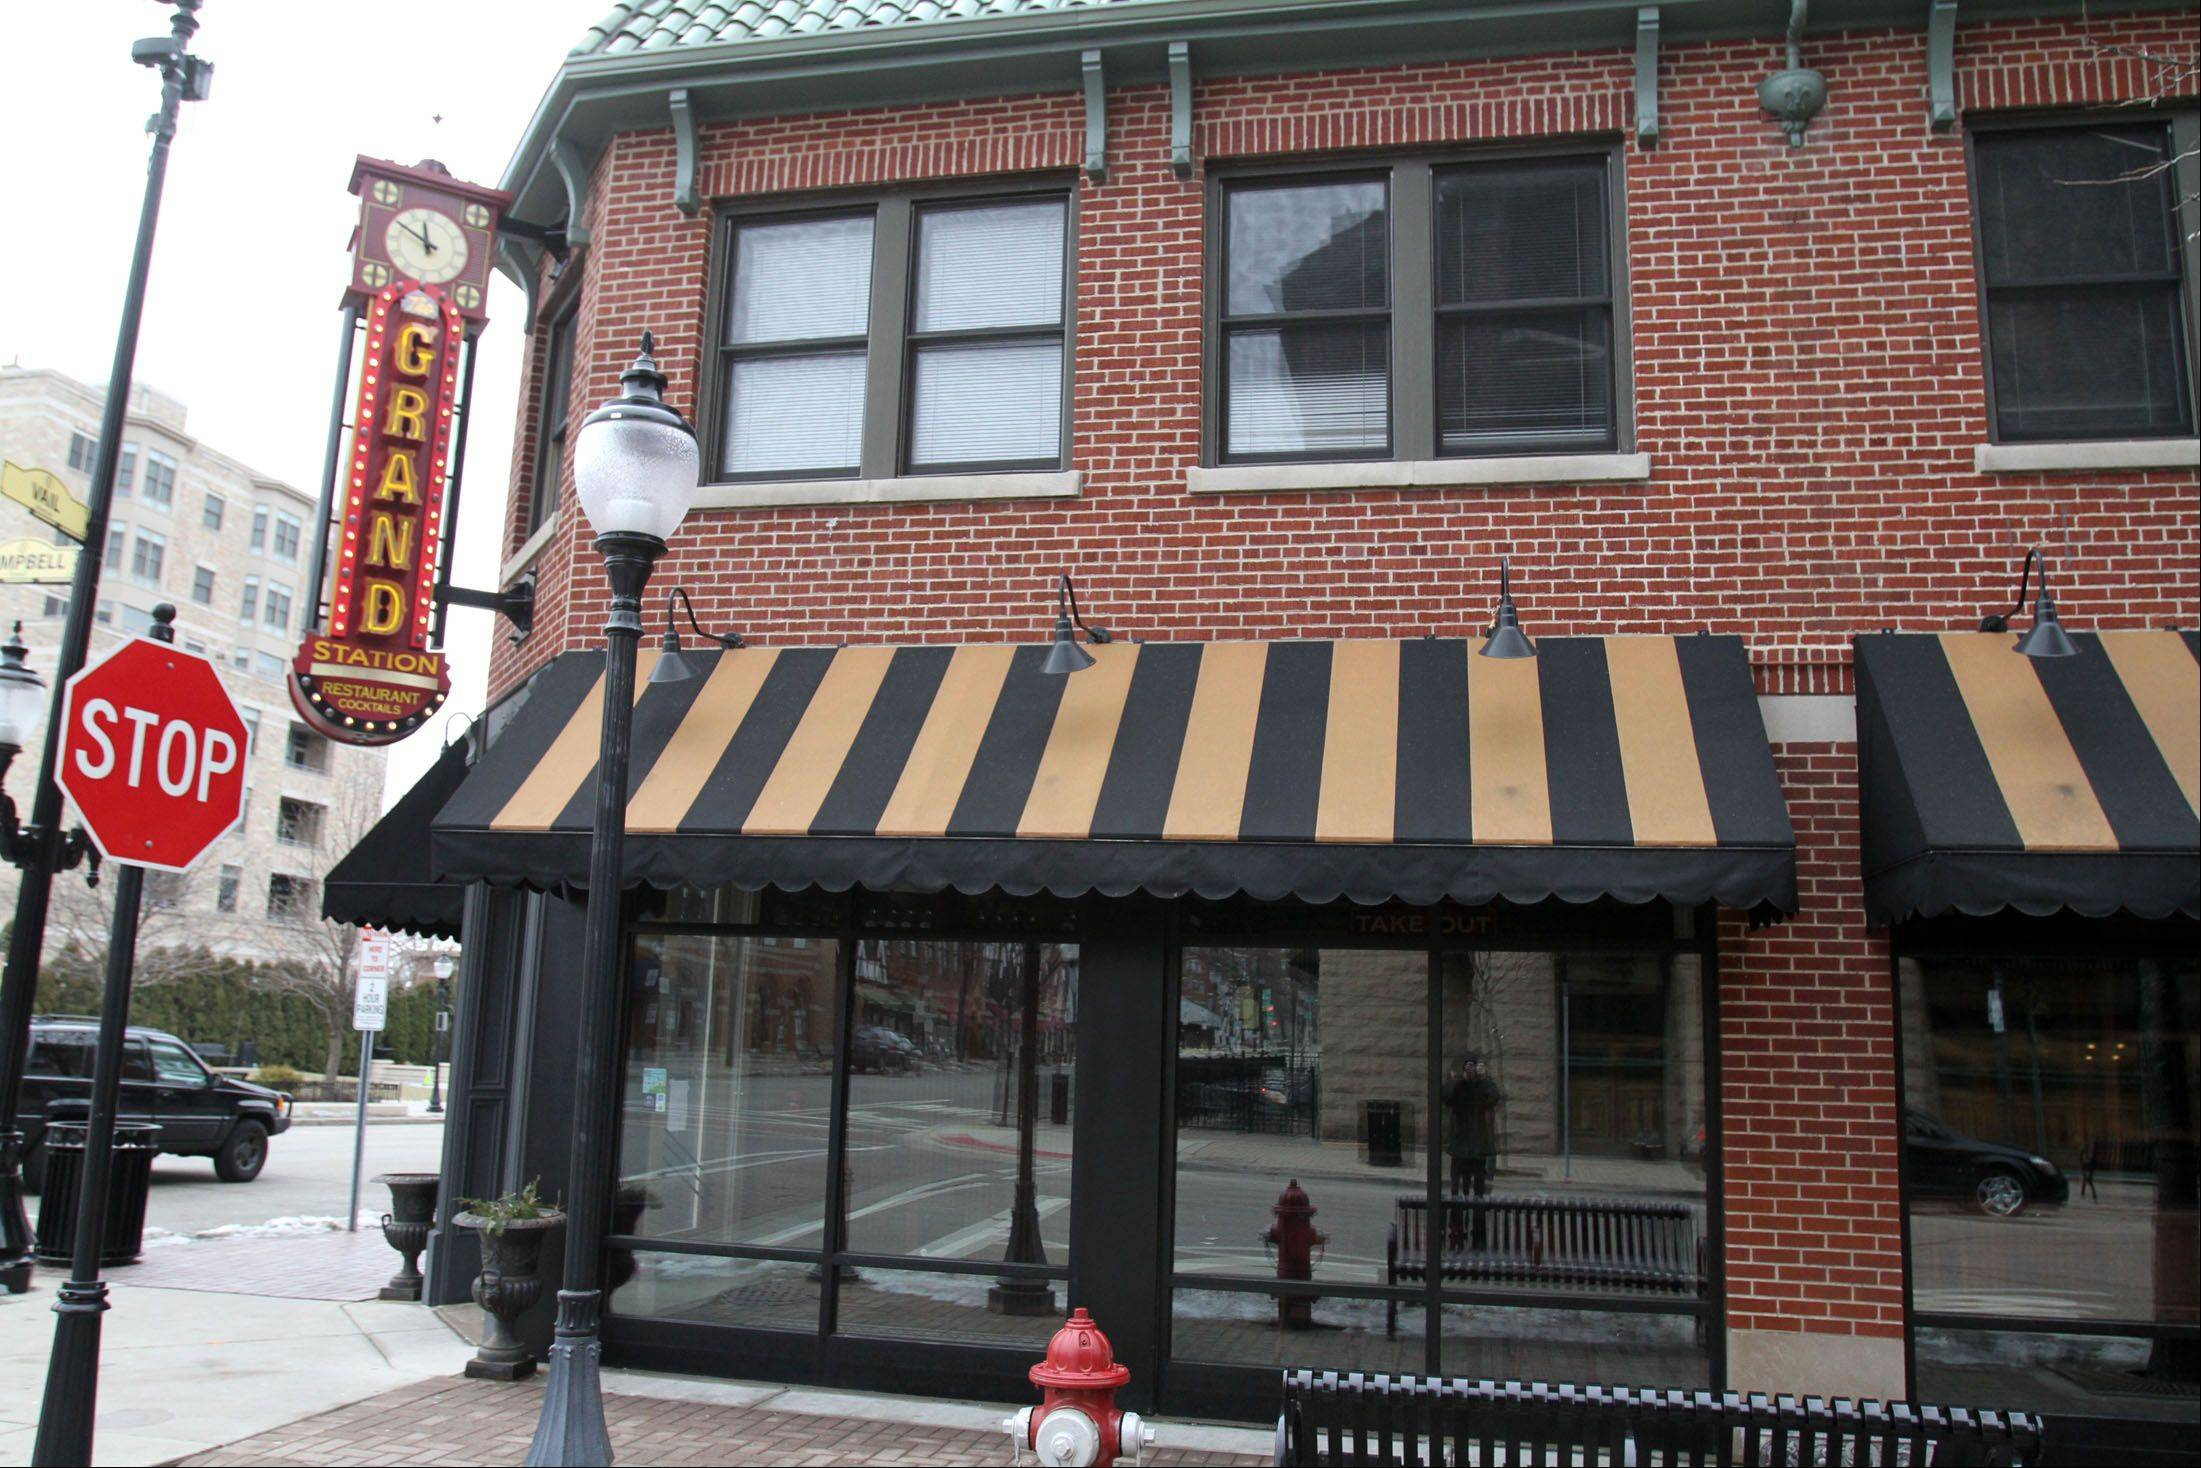 Arlington Heights officials this week approved plans for a new 50s-themed restaurant called Circa 57 in the former Grand Station space in the village's downtown. Owners hope to have at least a portion of the new eatery open by August.